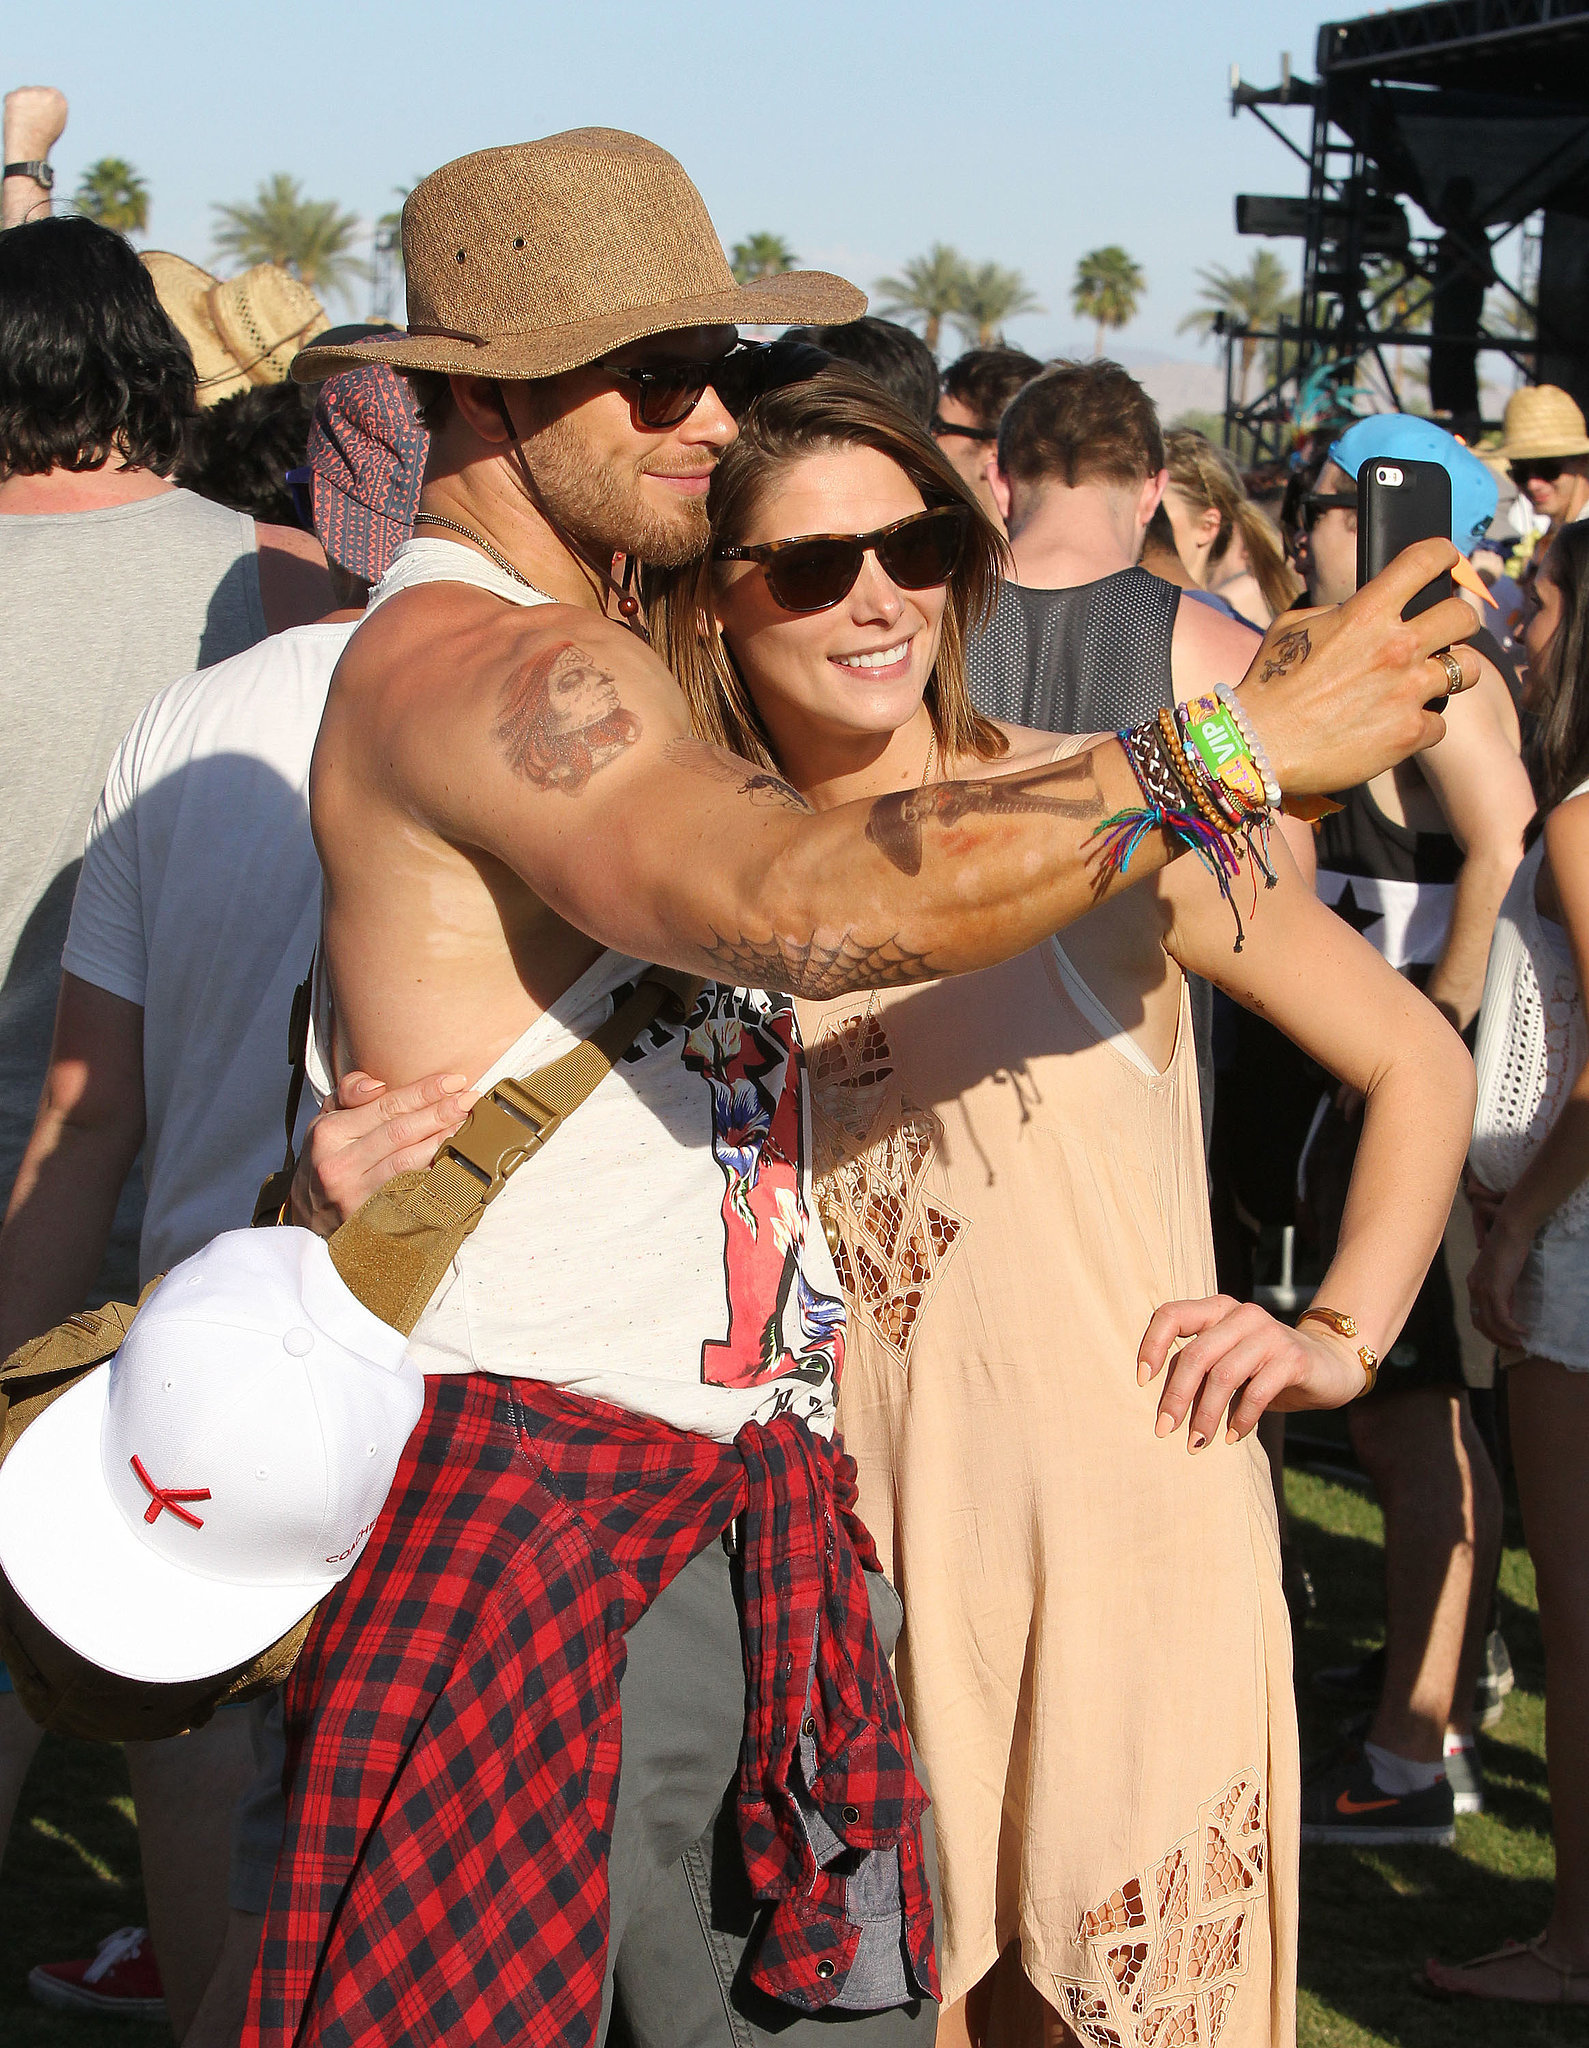 Kellan Lutz showed off his guns while taking a selfie with Ashley Greene.